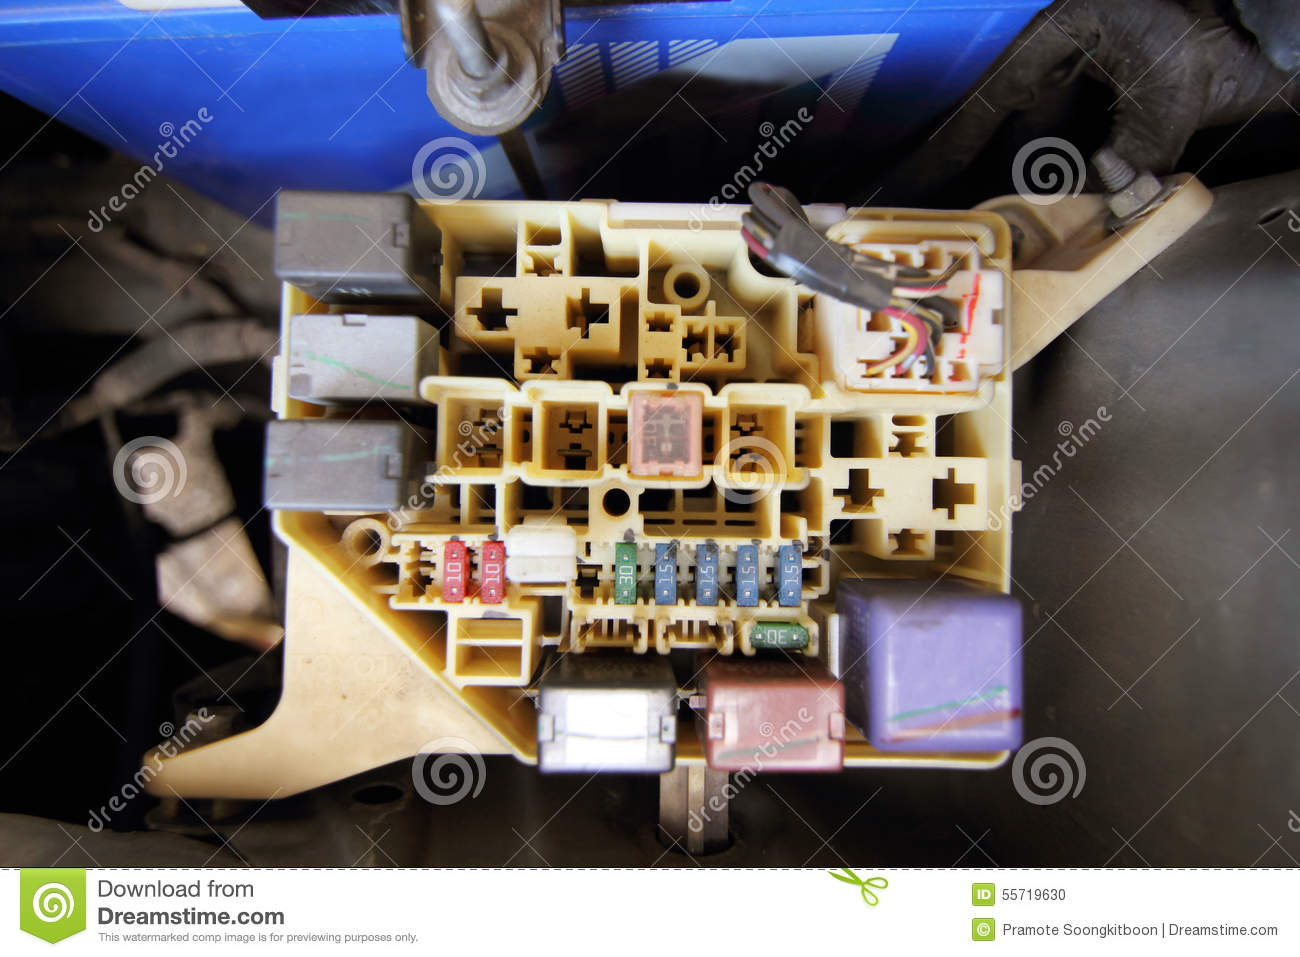 Fuse box of car opened , electronic part fuse